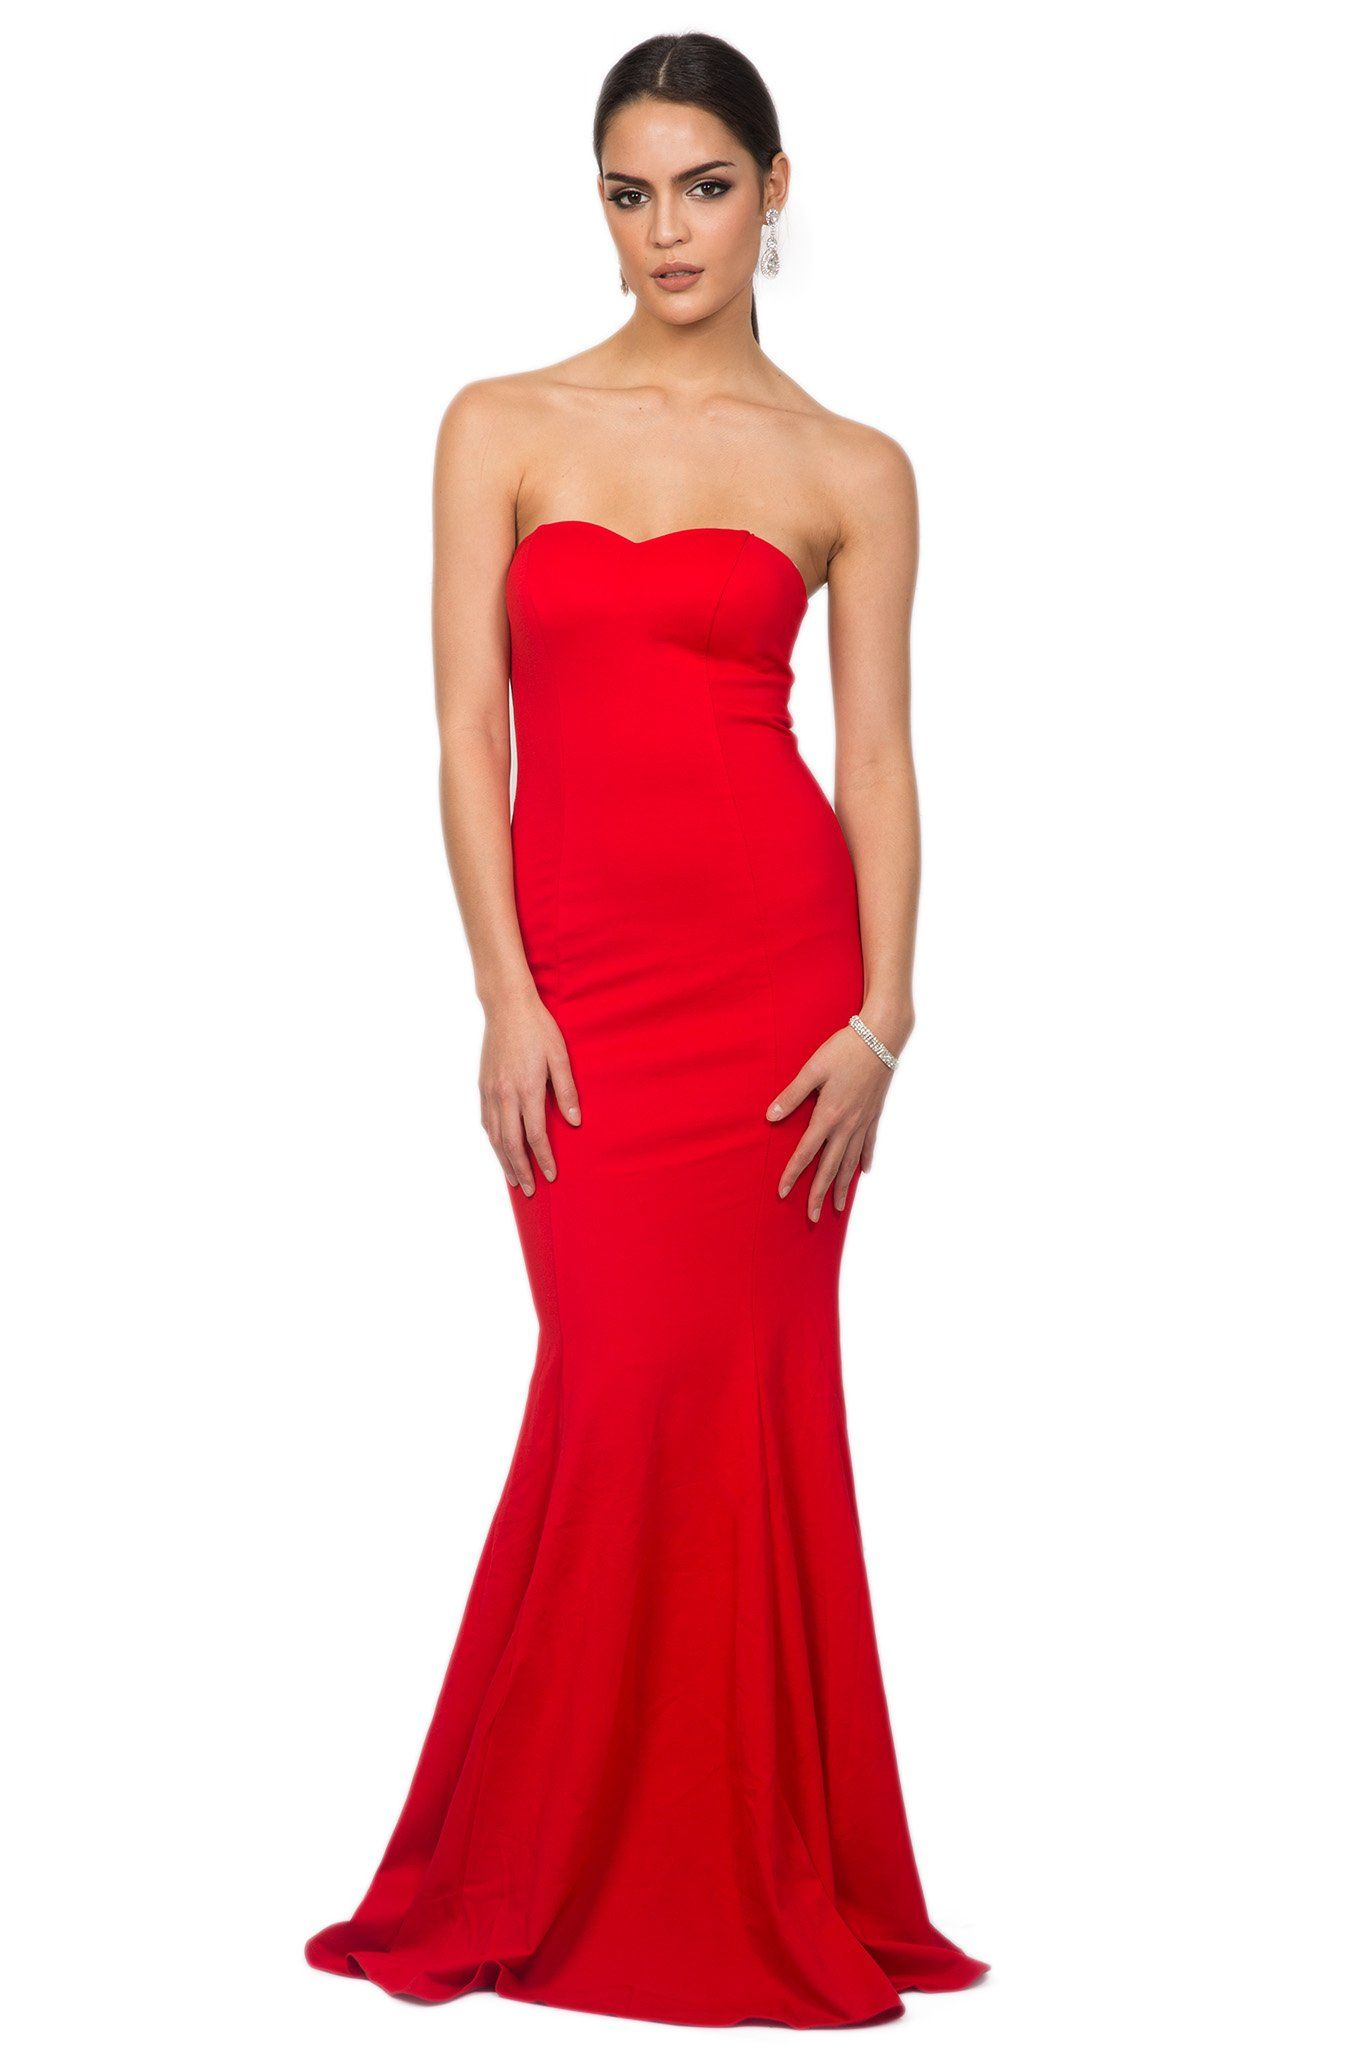 Red strapless sleeveless floor length evening fitted bodycon gown with sweetheart neckline and mermaid tail